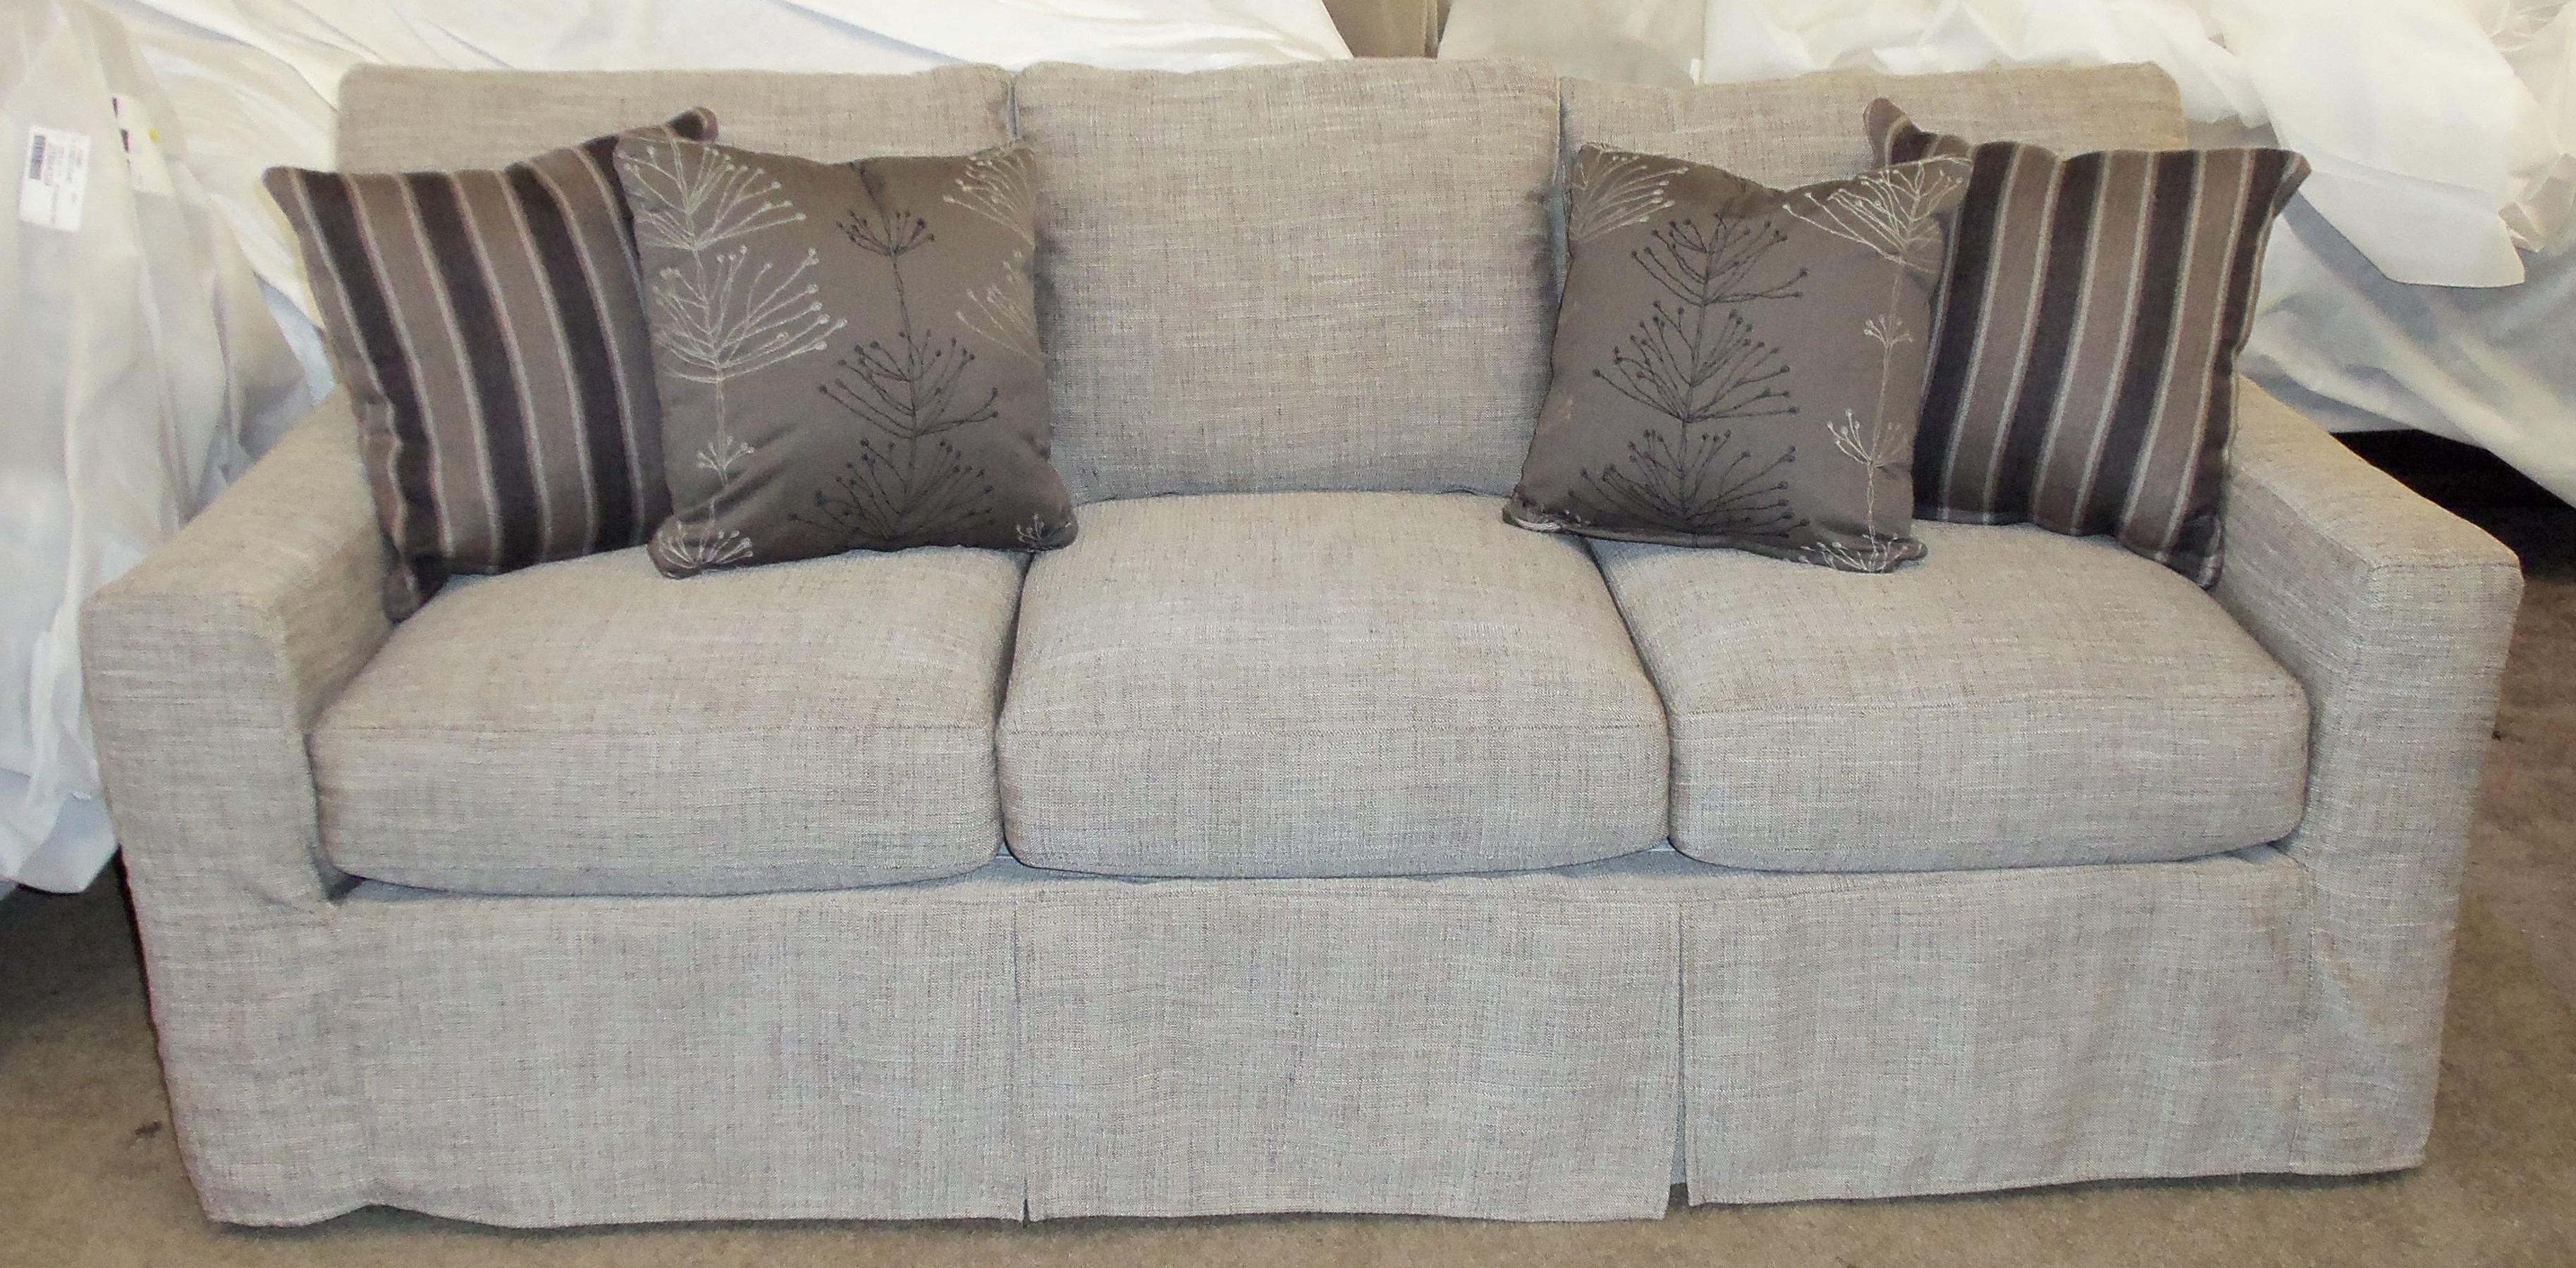 sectional sofa covers cheap outdoor patio furniture round retractable canopy 20 inspirations slipcovers sofas ideas